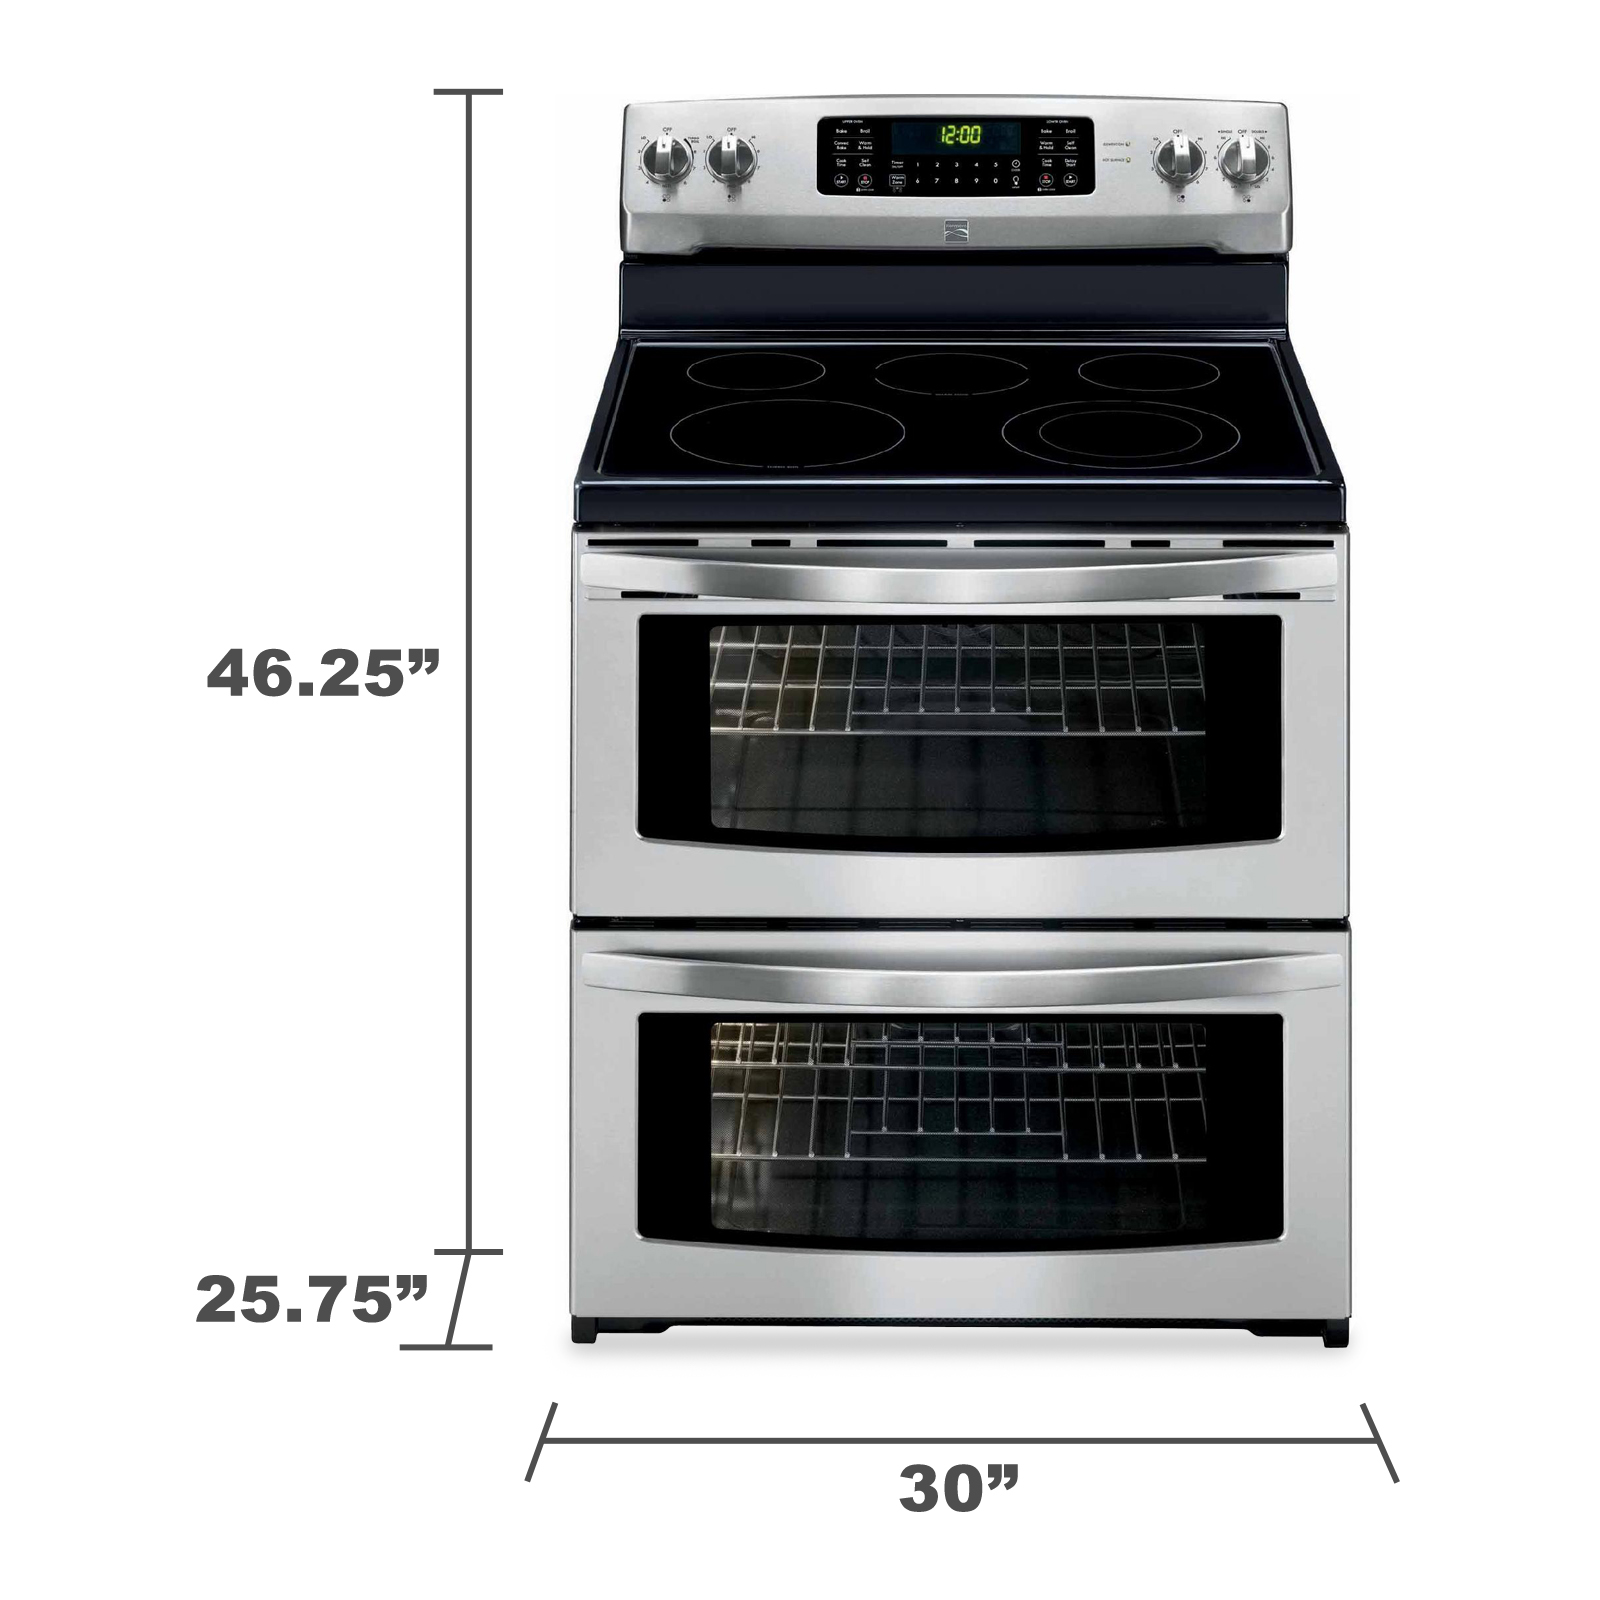 Kenmore 97213 7.2 cu. ft. Double-Oven Electric Range w/ Convection - Stainless Steel